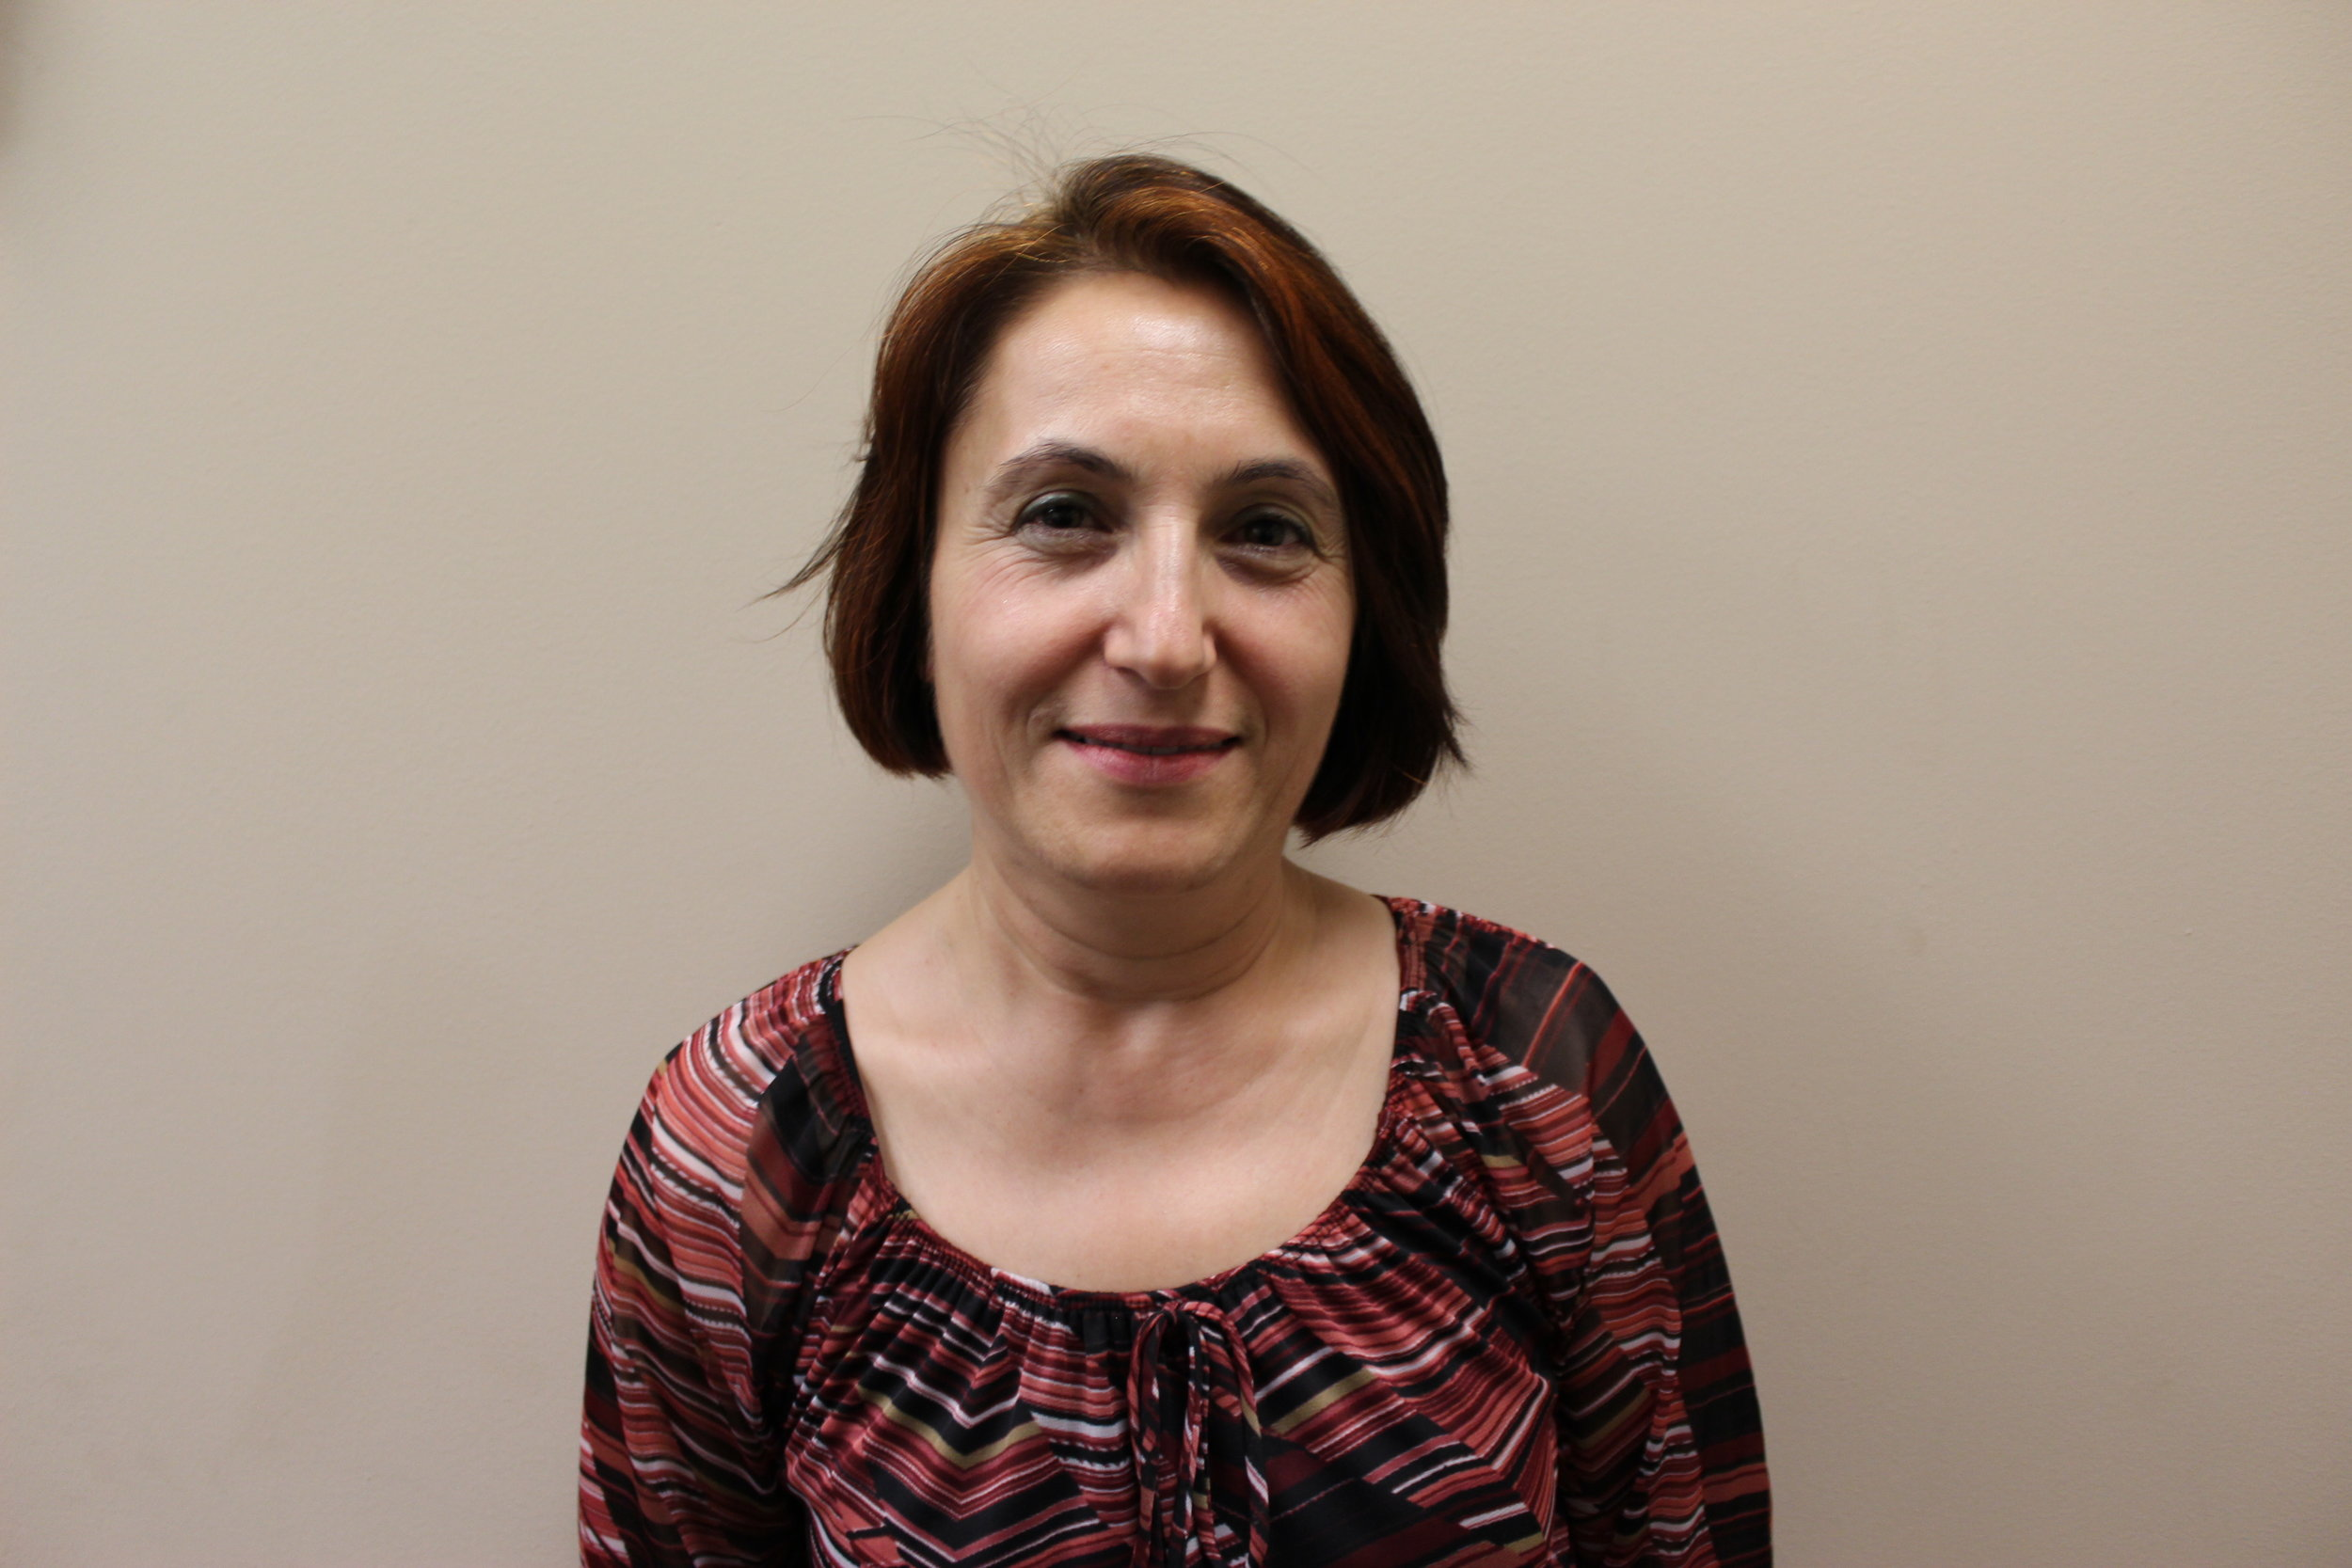 Tennur - former NYCH participant and volunteer